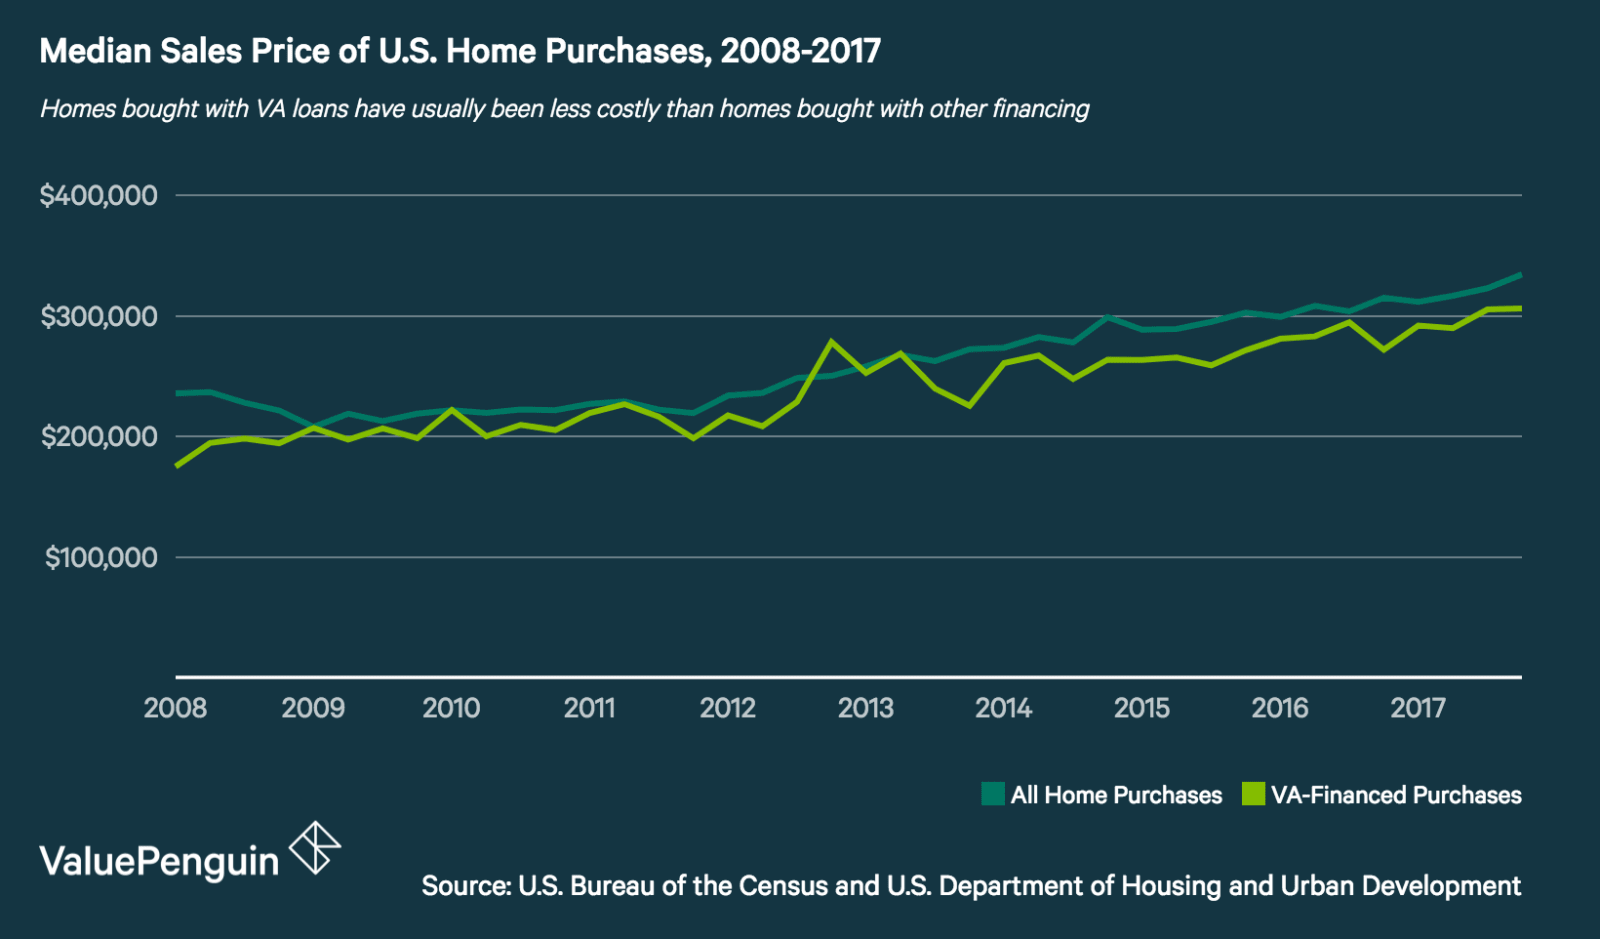 Graph of median sales prices for VA-financed home purchases and all new home purchases from 2008 to 2017